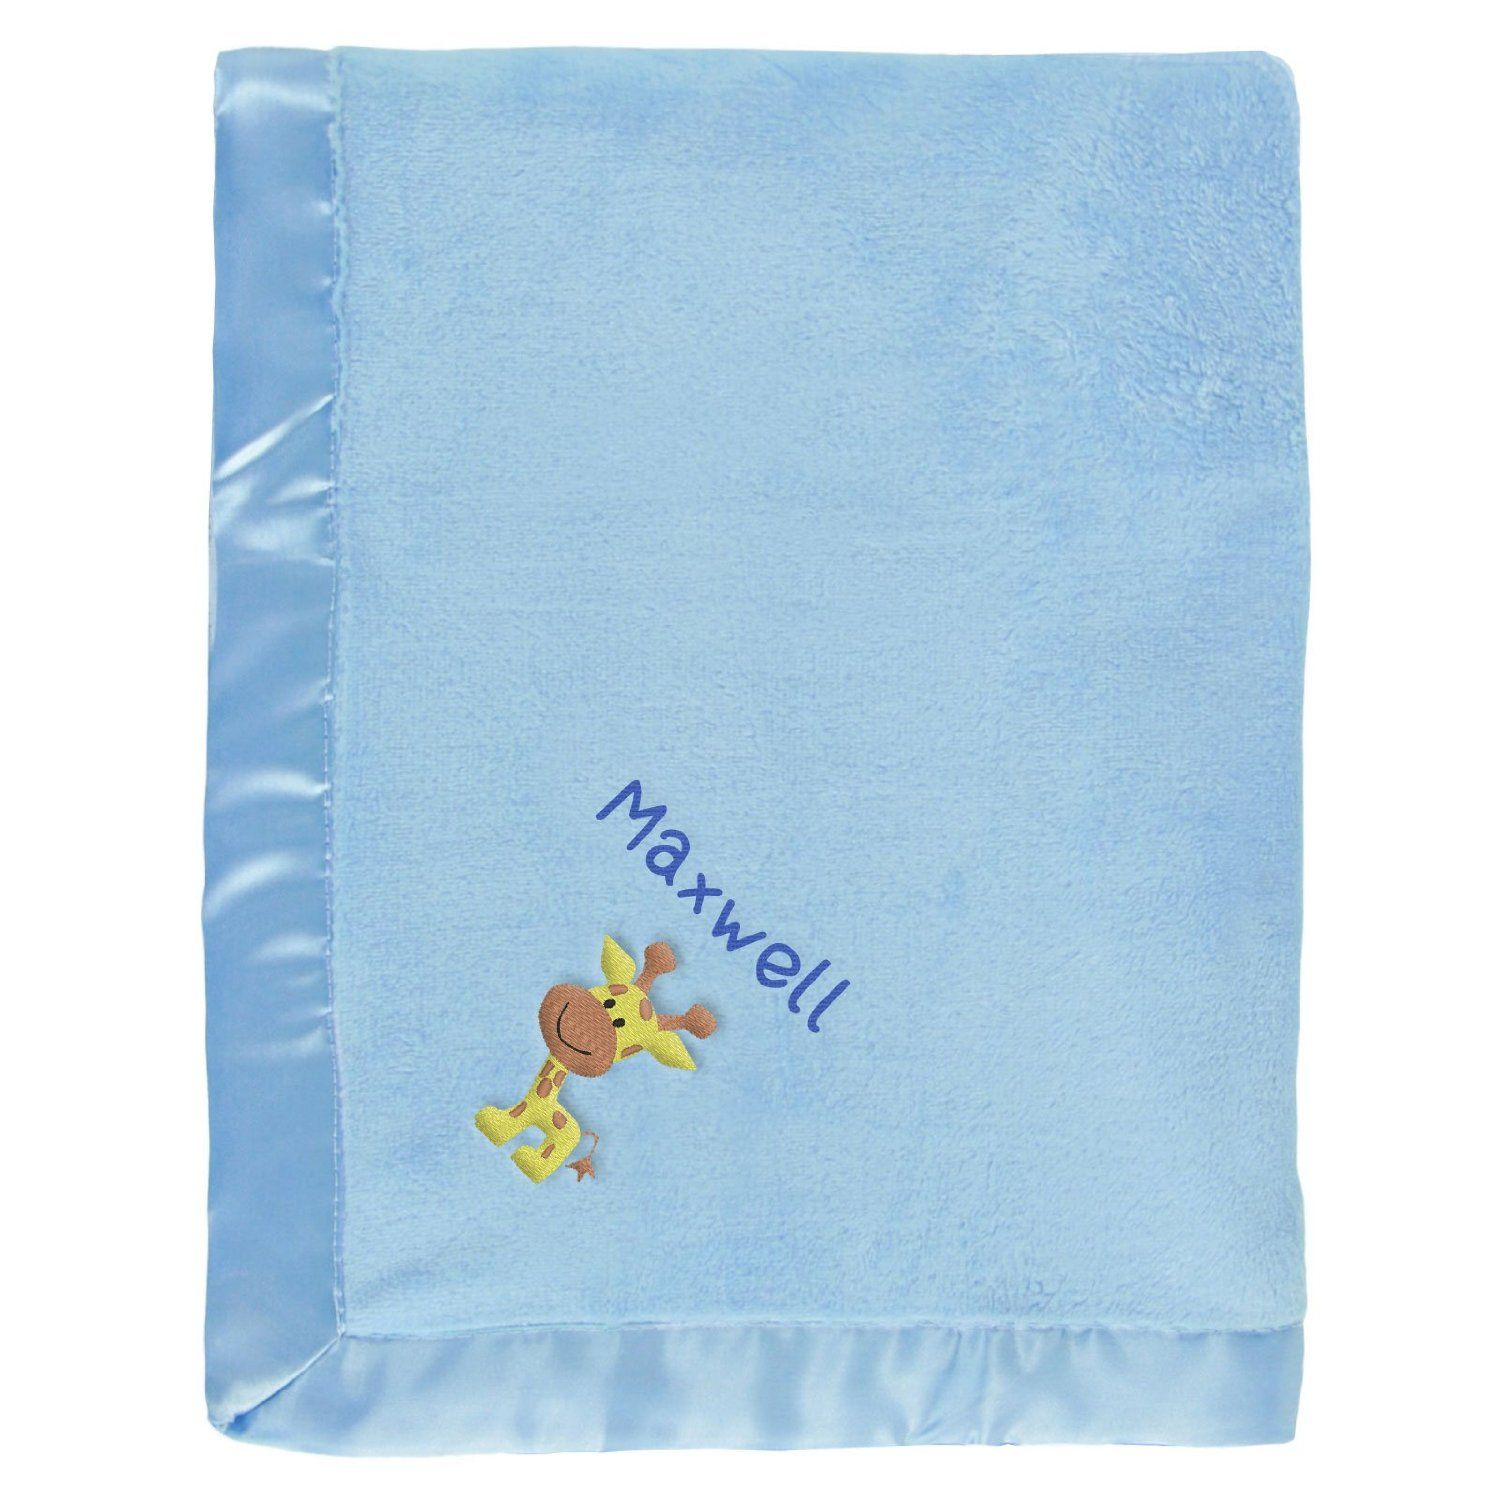 #Maxwell baby boy blanket in blue with a little Giraffe. The name Maxwell is personalized with unique embroidery in a custom design, perfect as a newborn #baby shower gift.  https://www.babyblankets.com/use/crib/blue-baby-blanket?utm_source=pinterest&utm_medium=pin&utm_campaign=boy_name